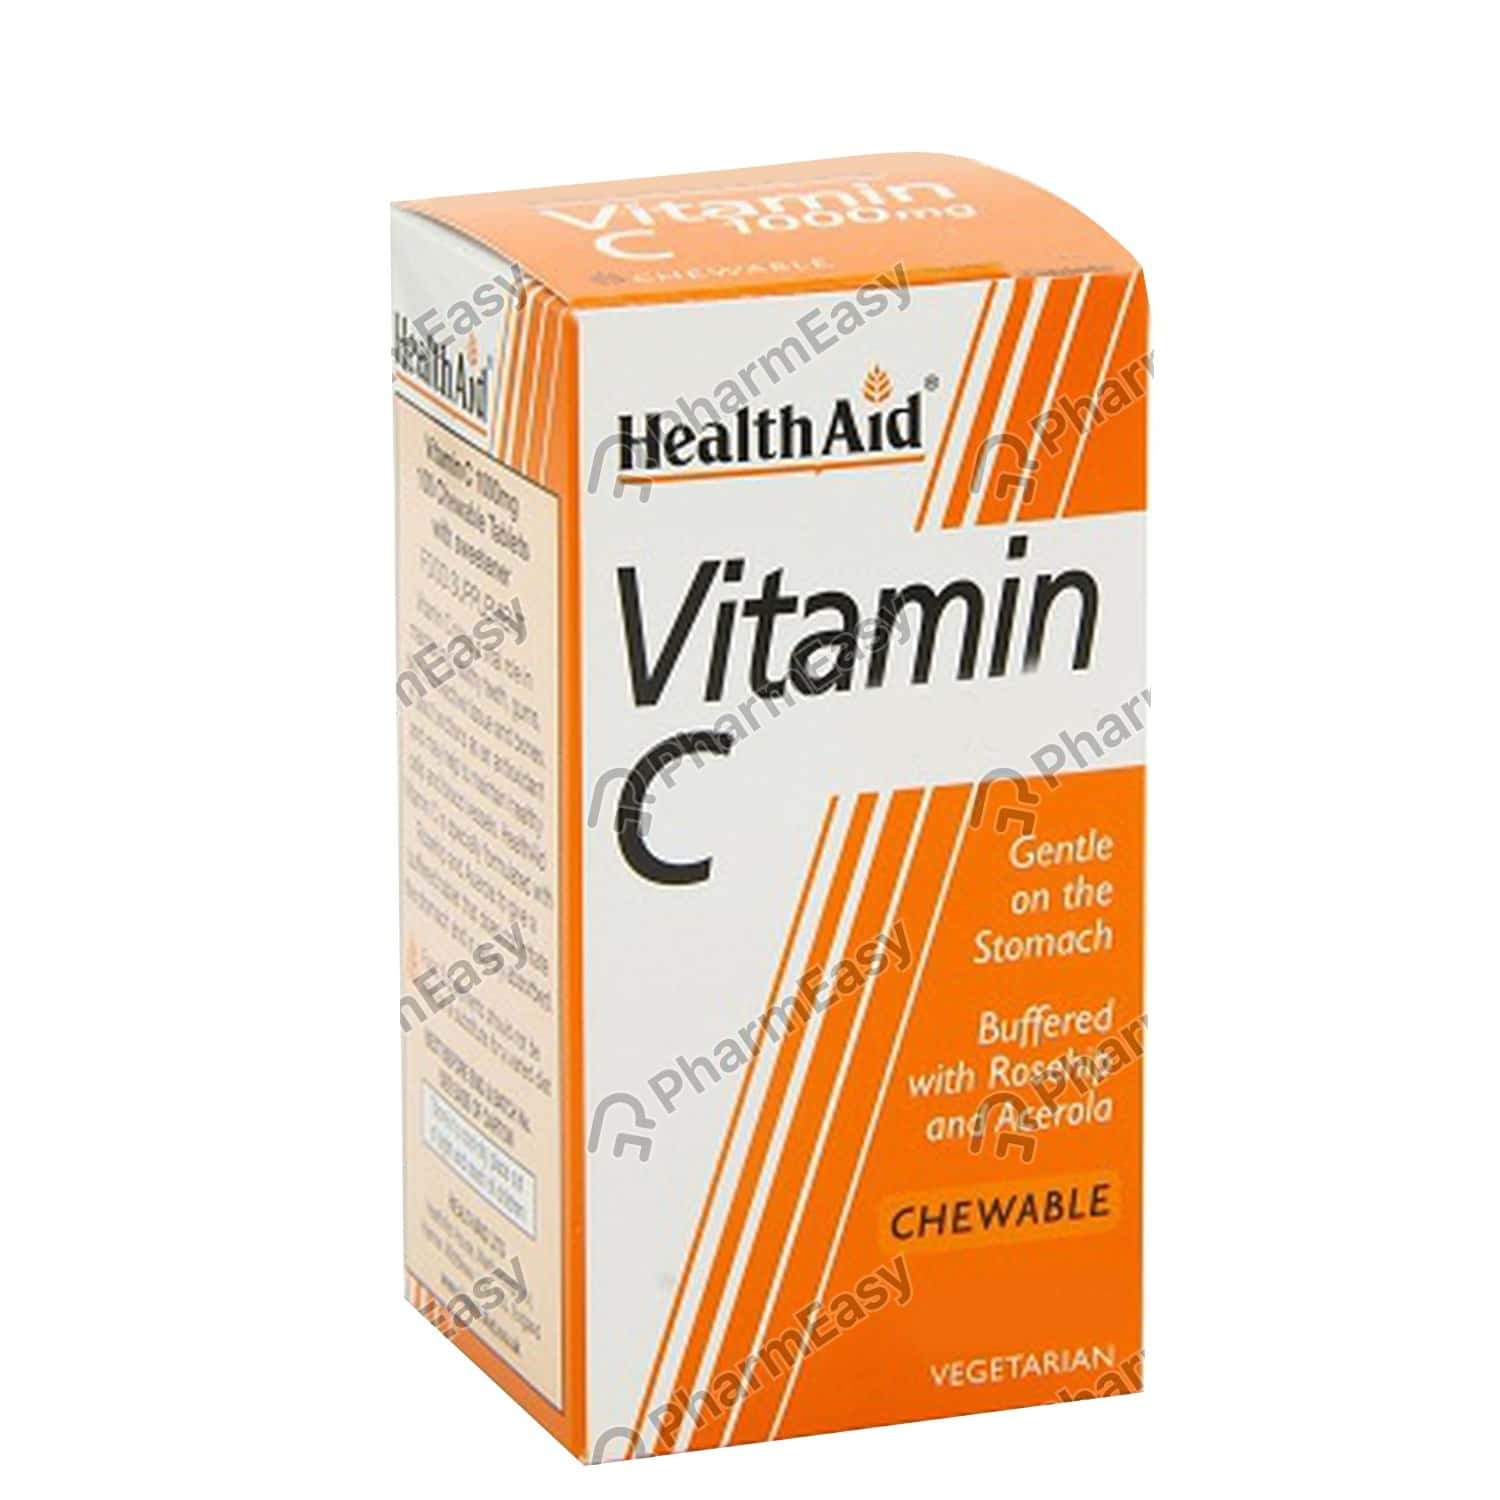 Health Aid Vitamin C 1000mg Pr Tab 100's